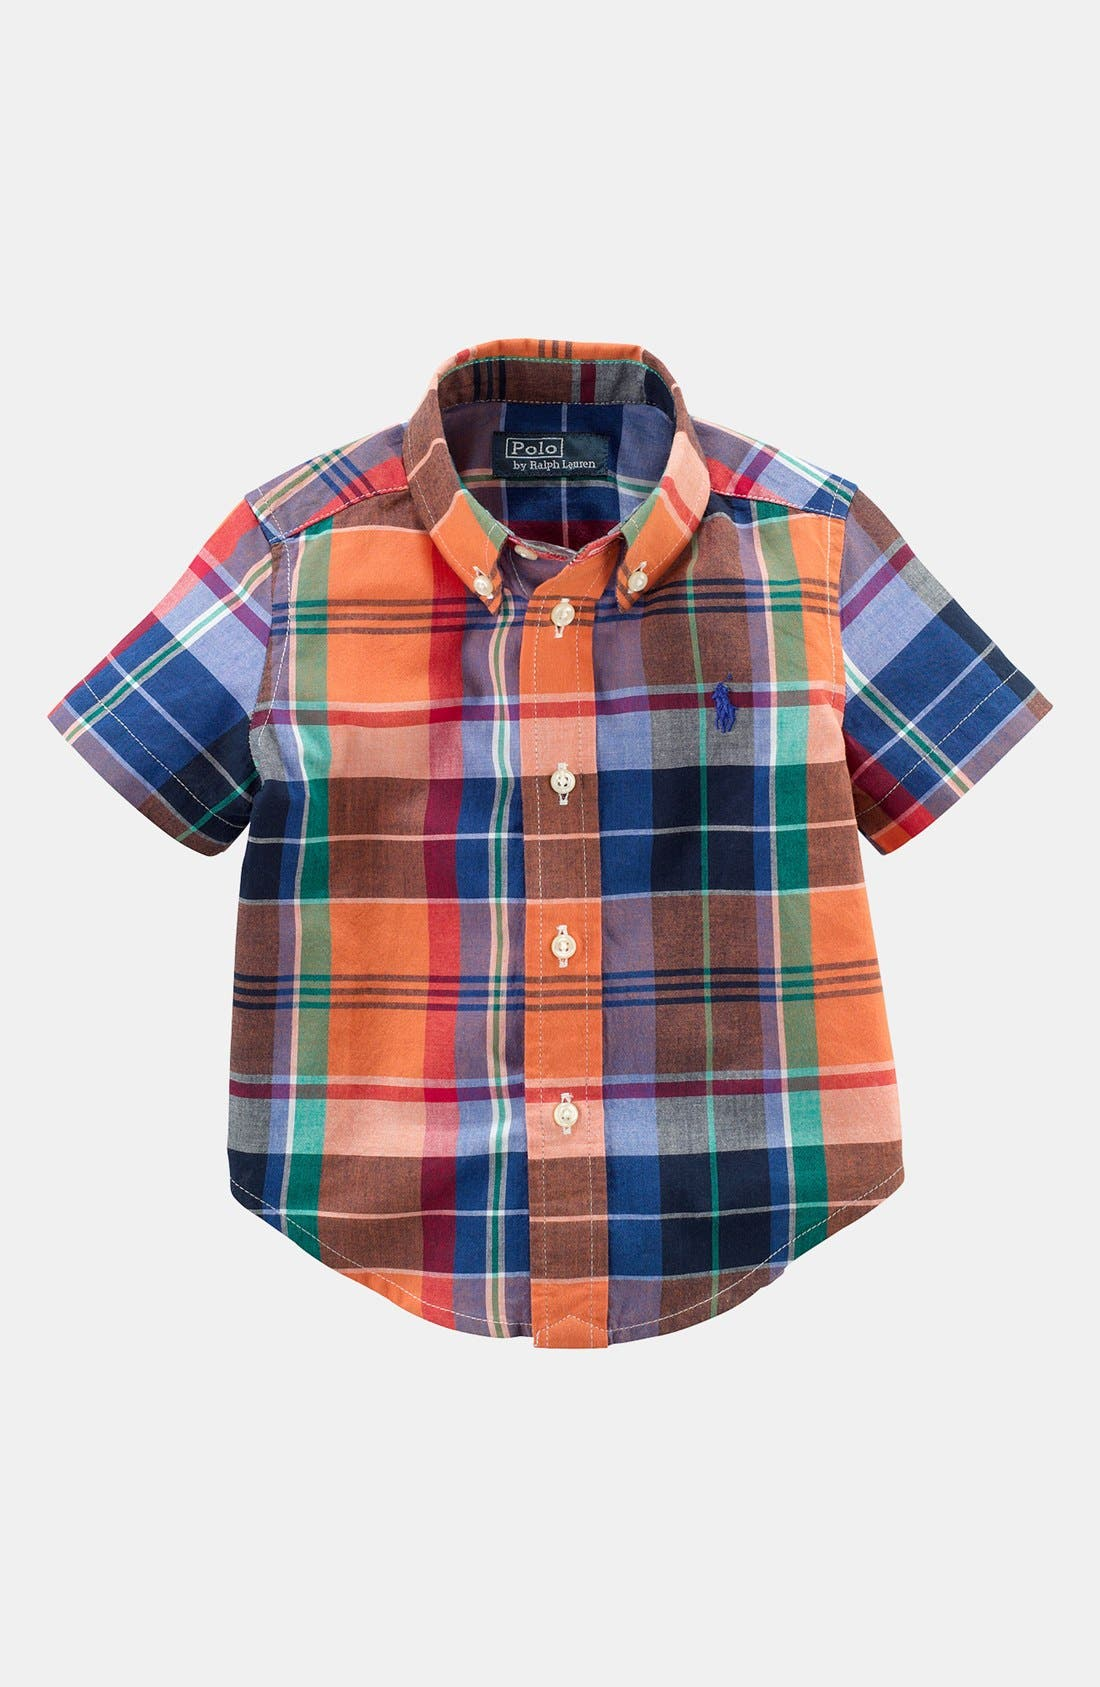 Alternate Image 1 Selected - Ralph Lauren Madras Shirt (Baby Boys)